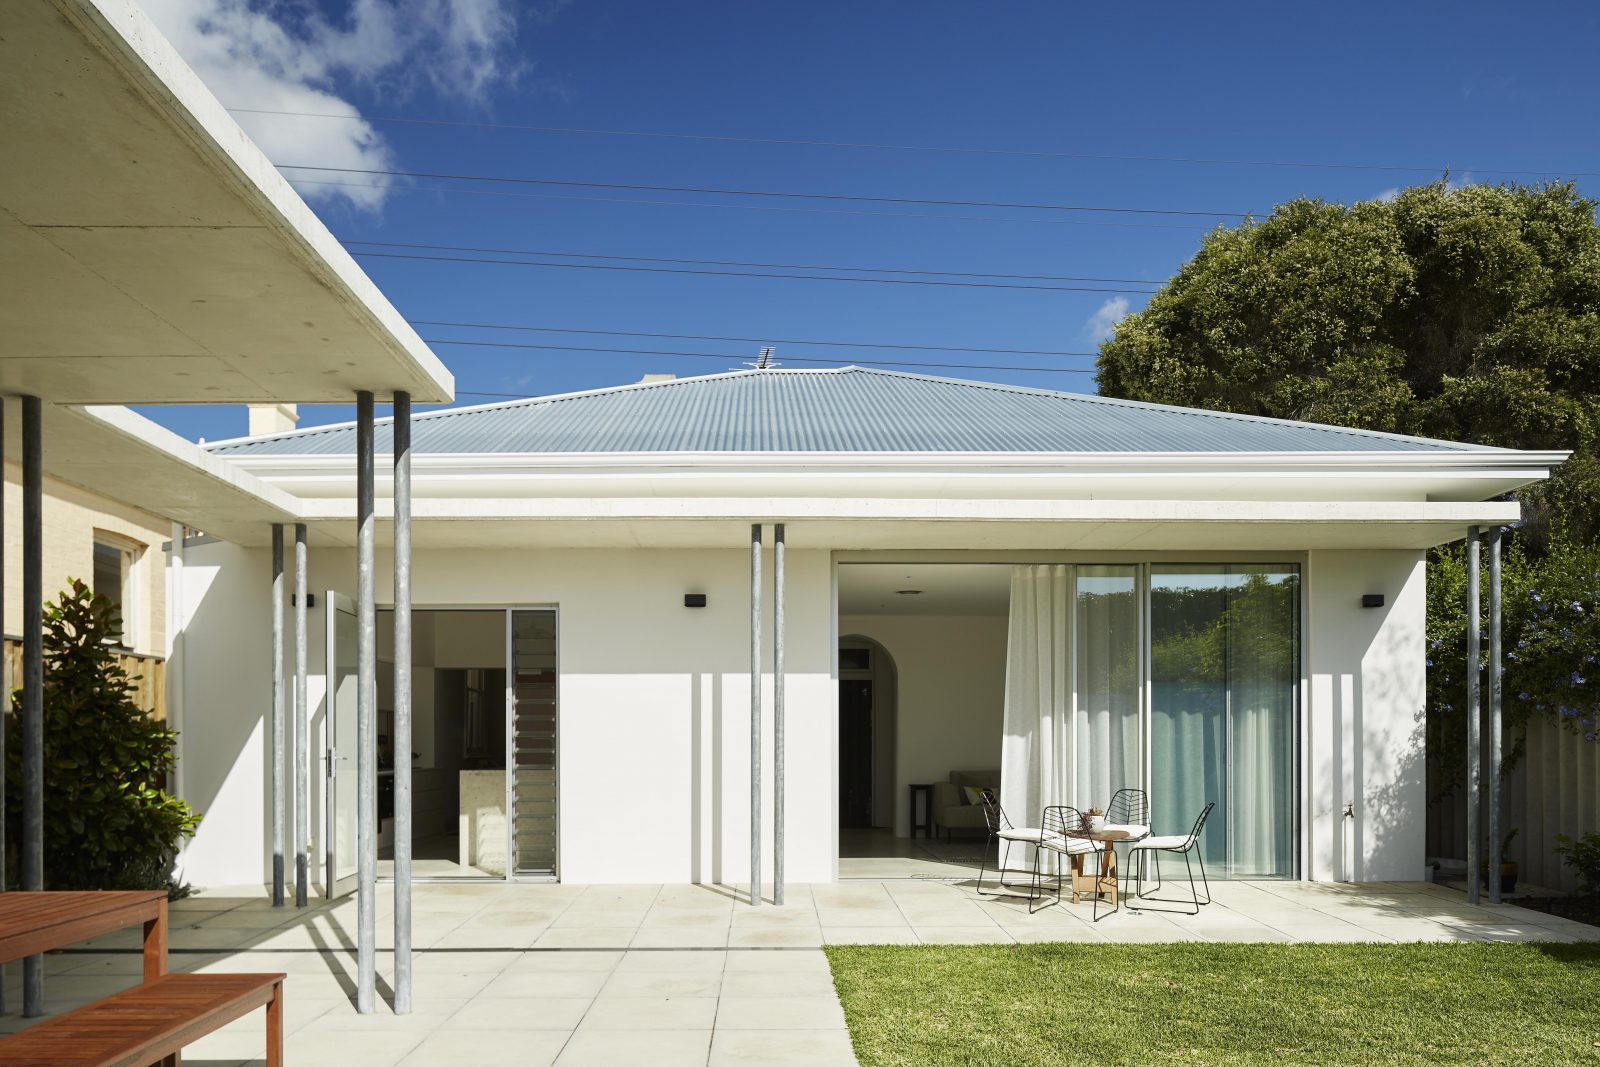 Palmerston St renovation Architecture by Vittino Ashe